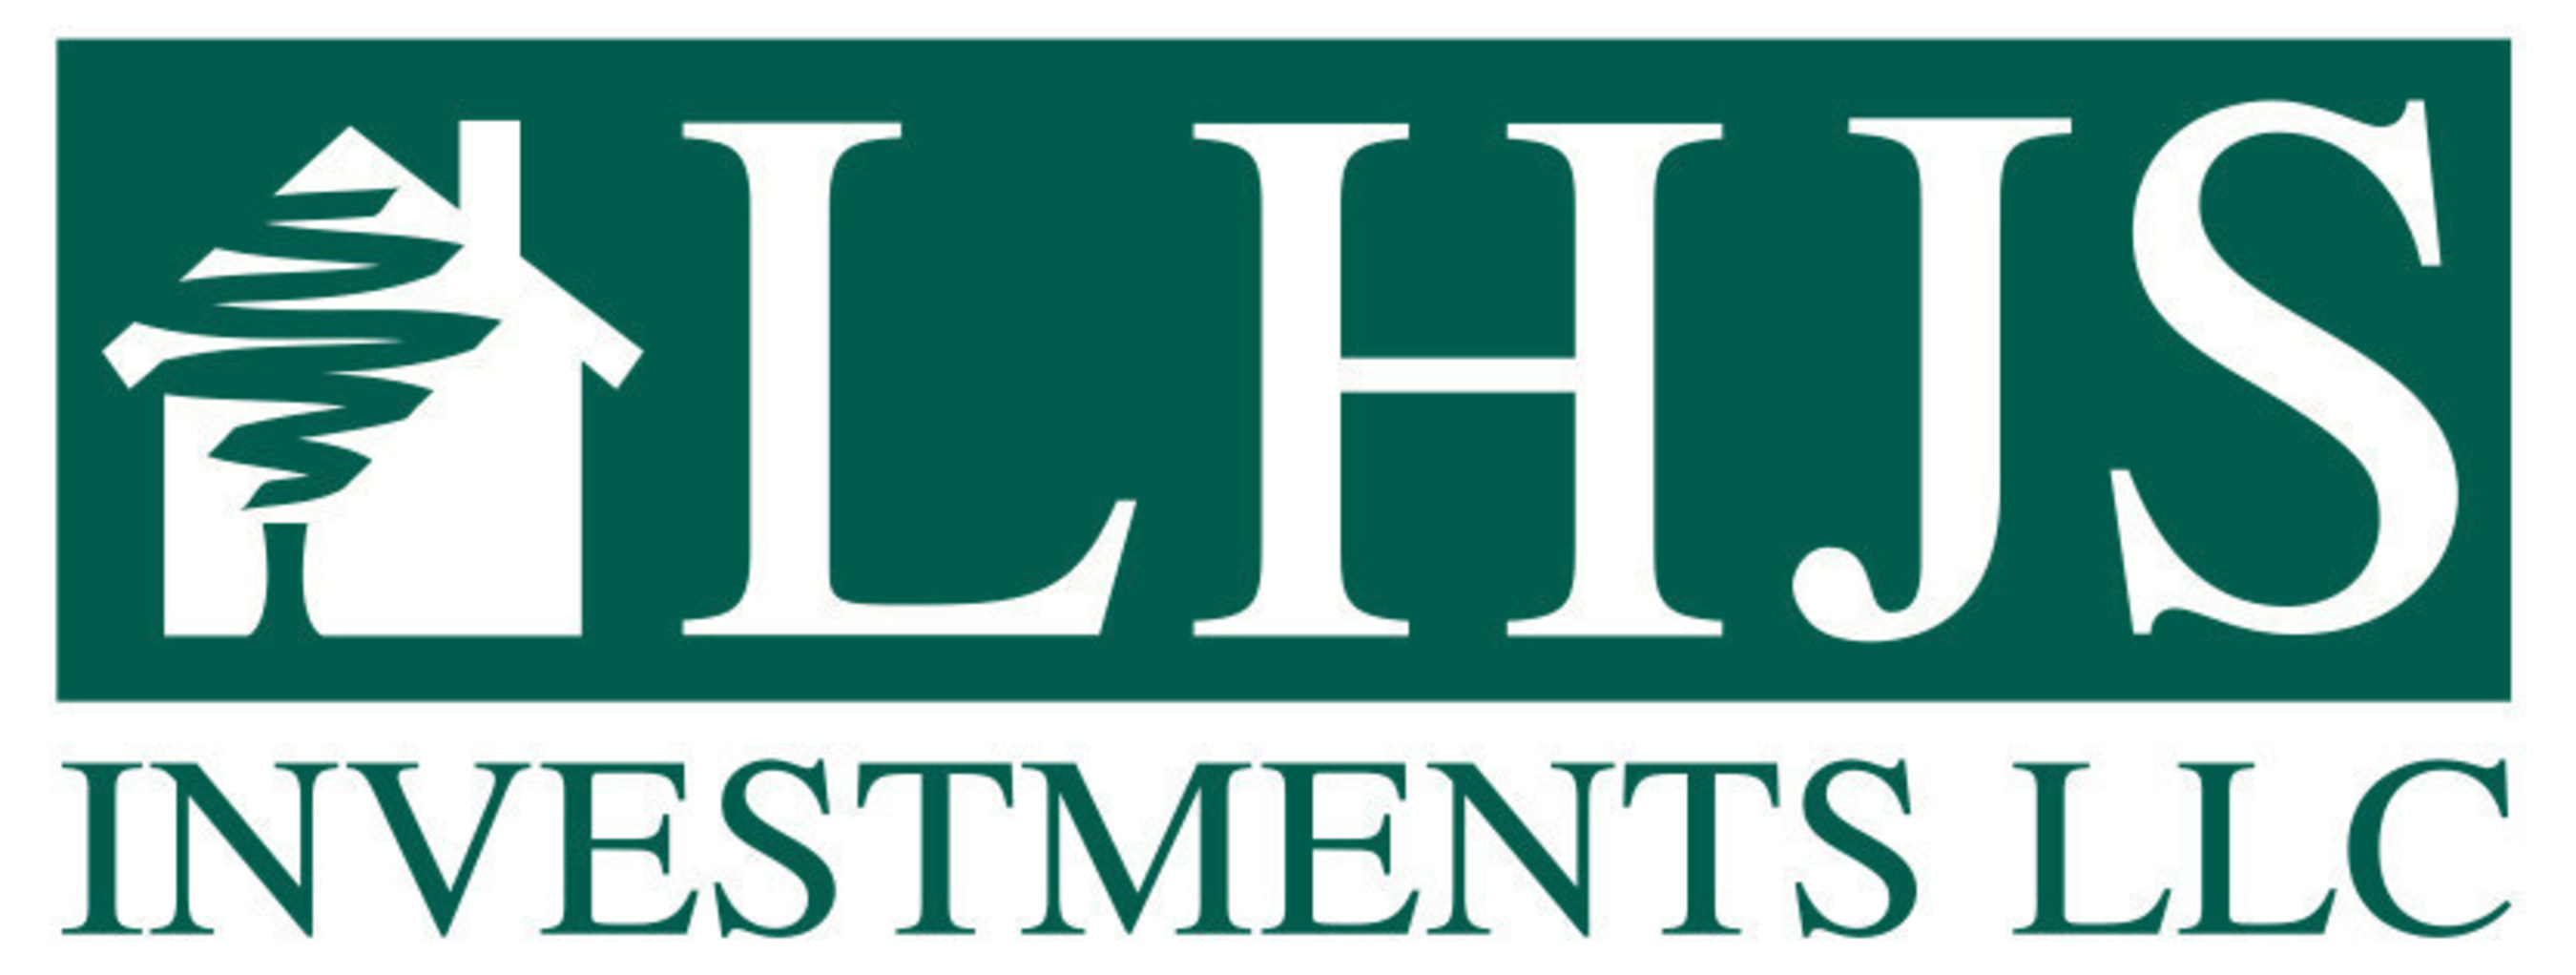 LHJS Investments LLC Builds the Bay Area Economy